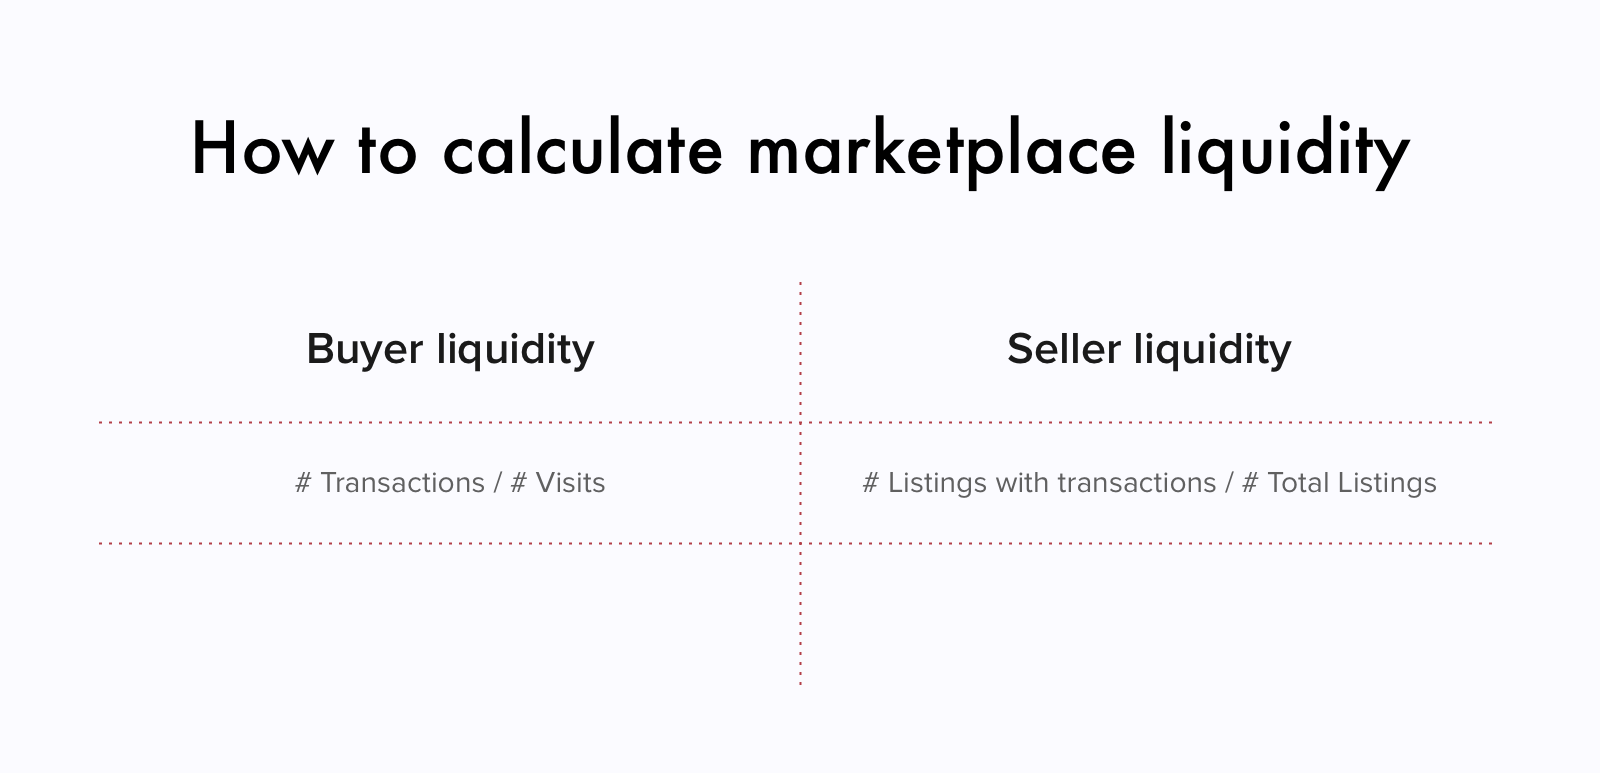 How to calculate marketpace liquidity